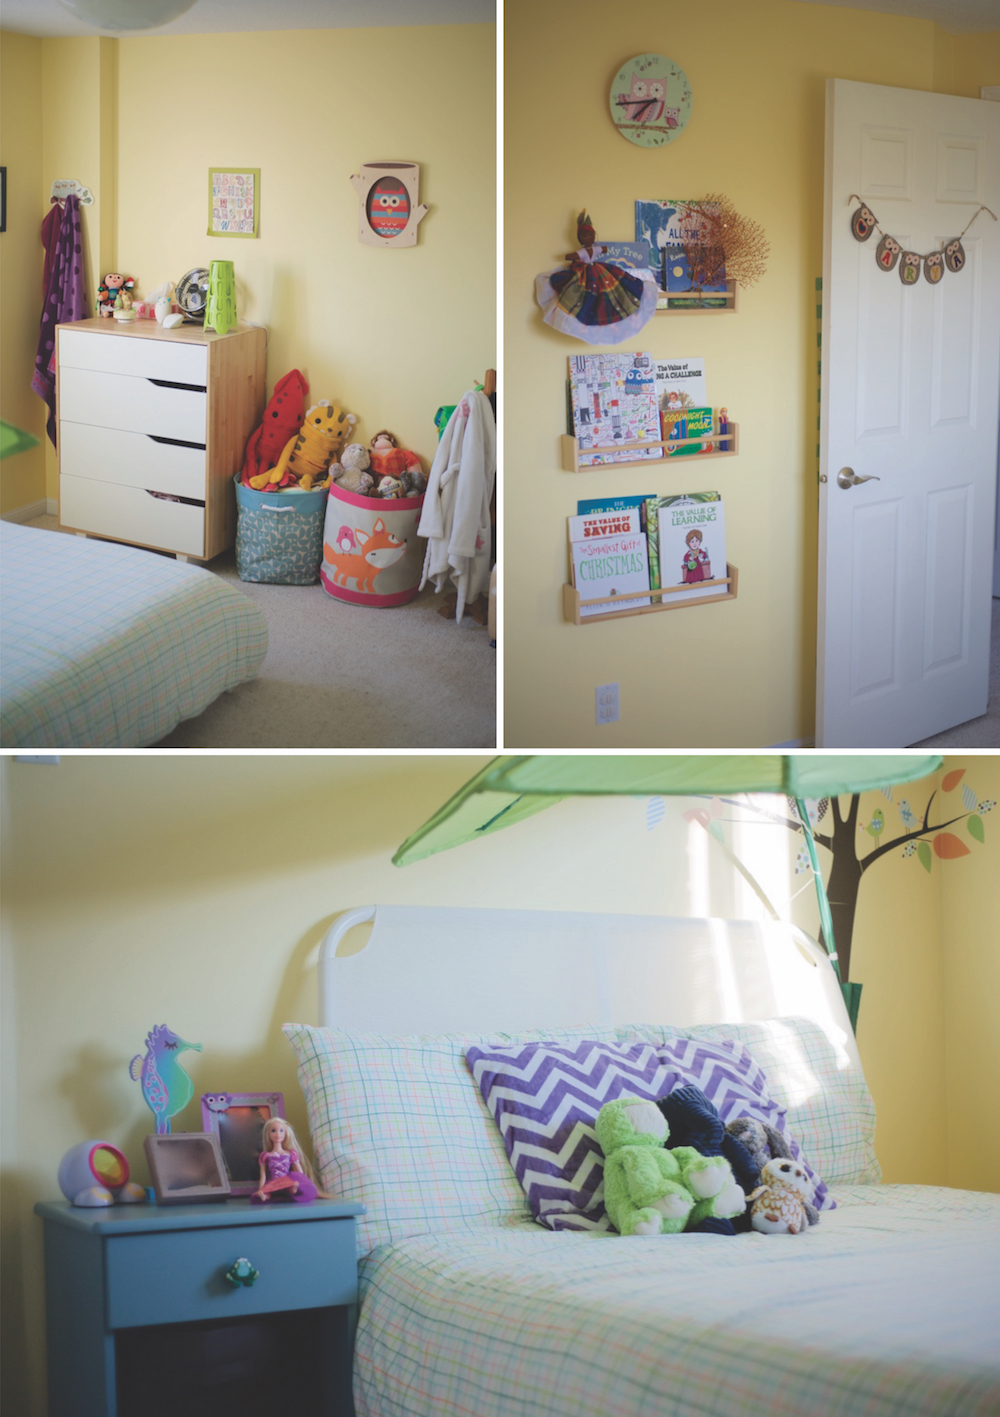 We were able to reuse all of the big furniture, bed, dresser and side table in her new room!